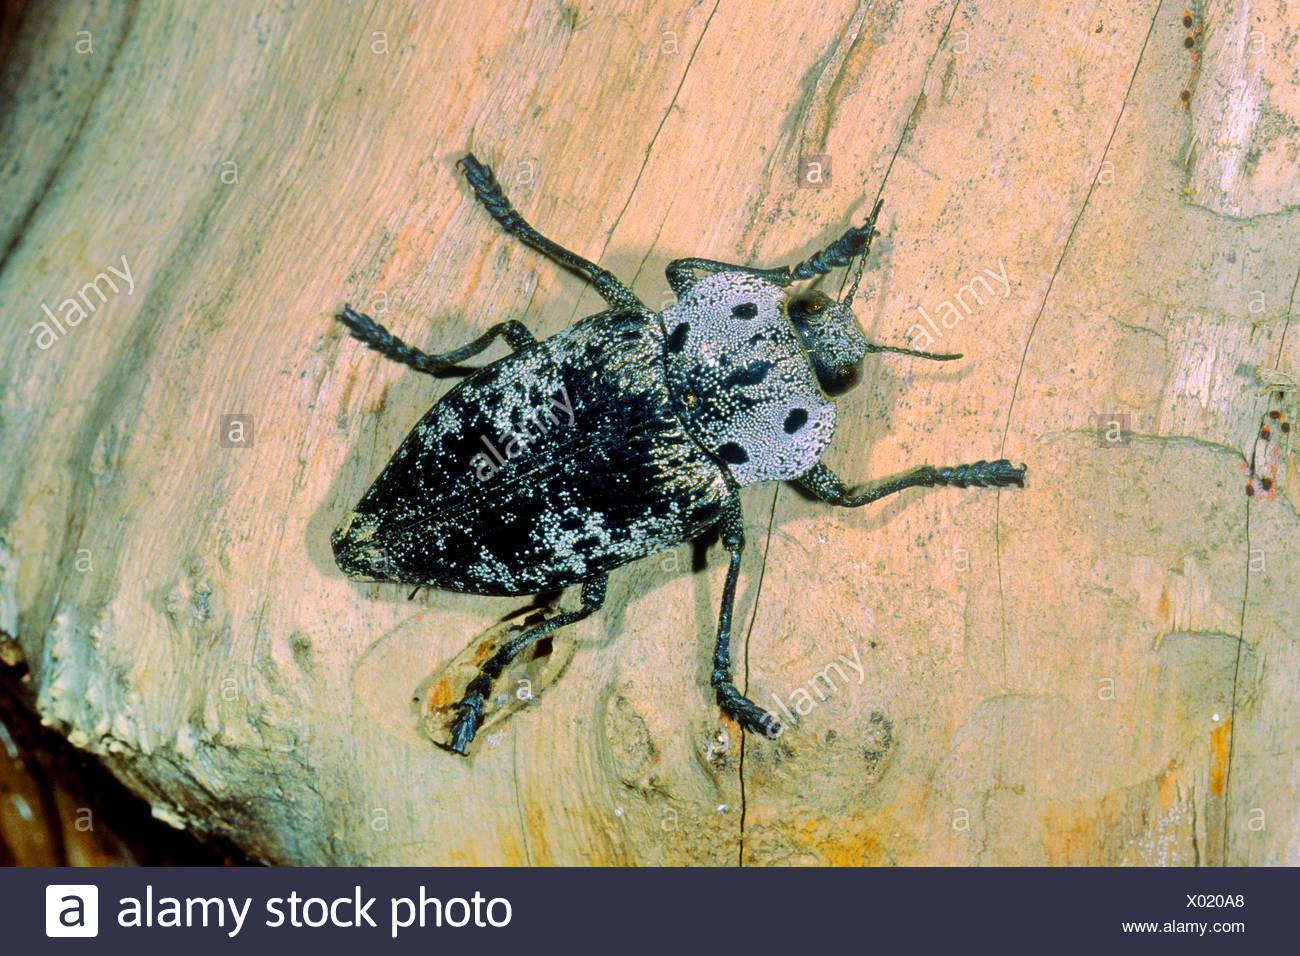 Peach Rootborer, Metallic Wood Boring Beetle (Capnodis tenebrionis), on wood, Germany - Stock Image